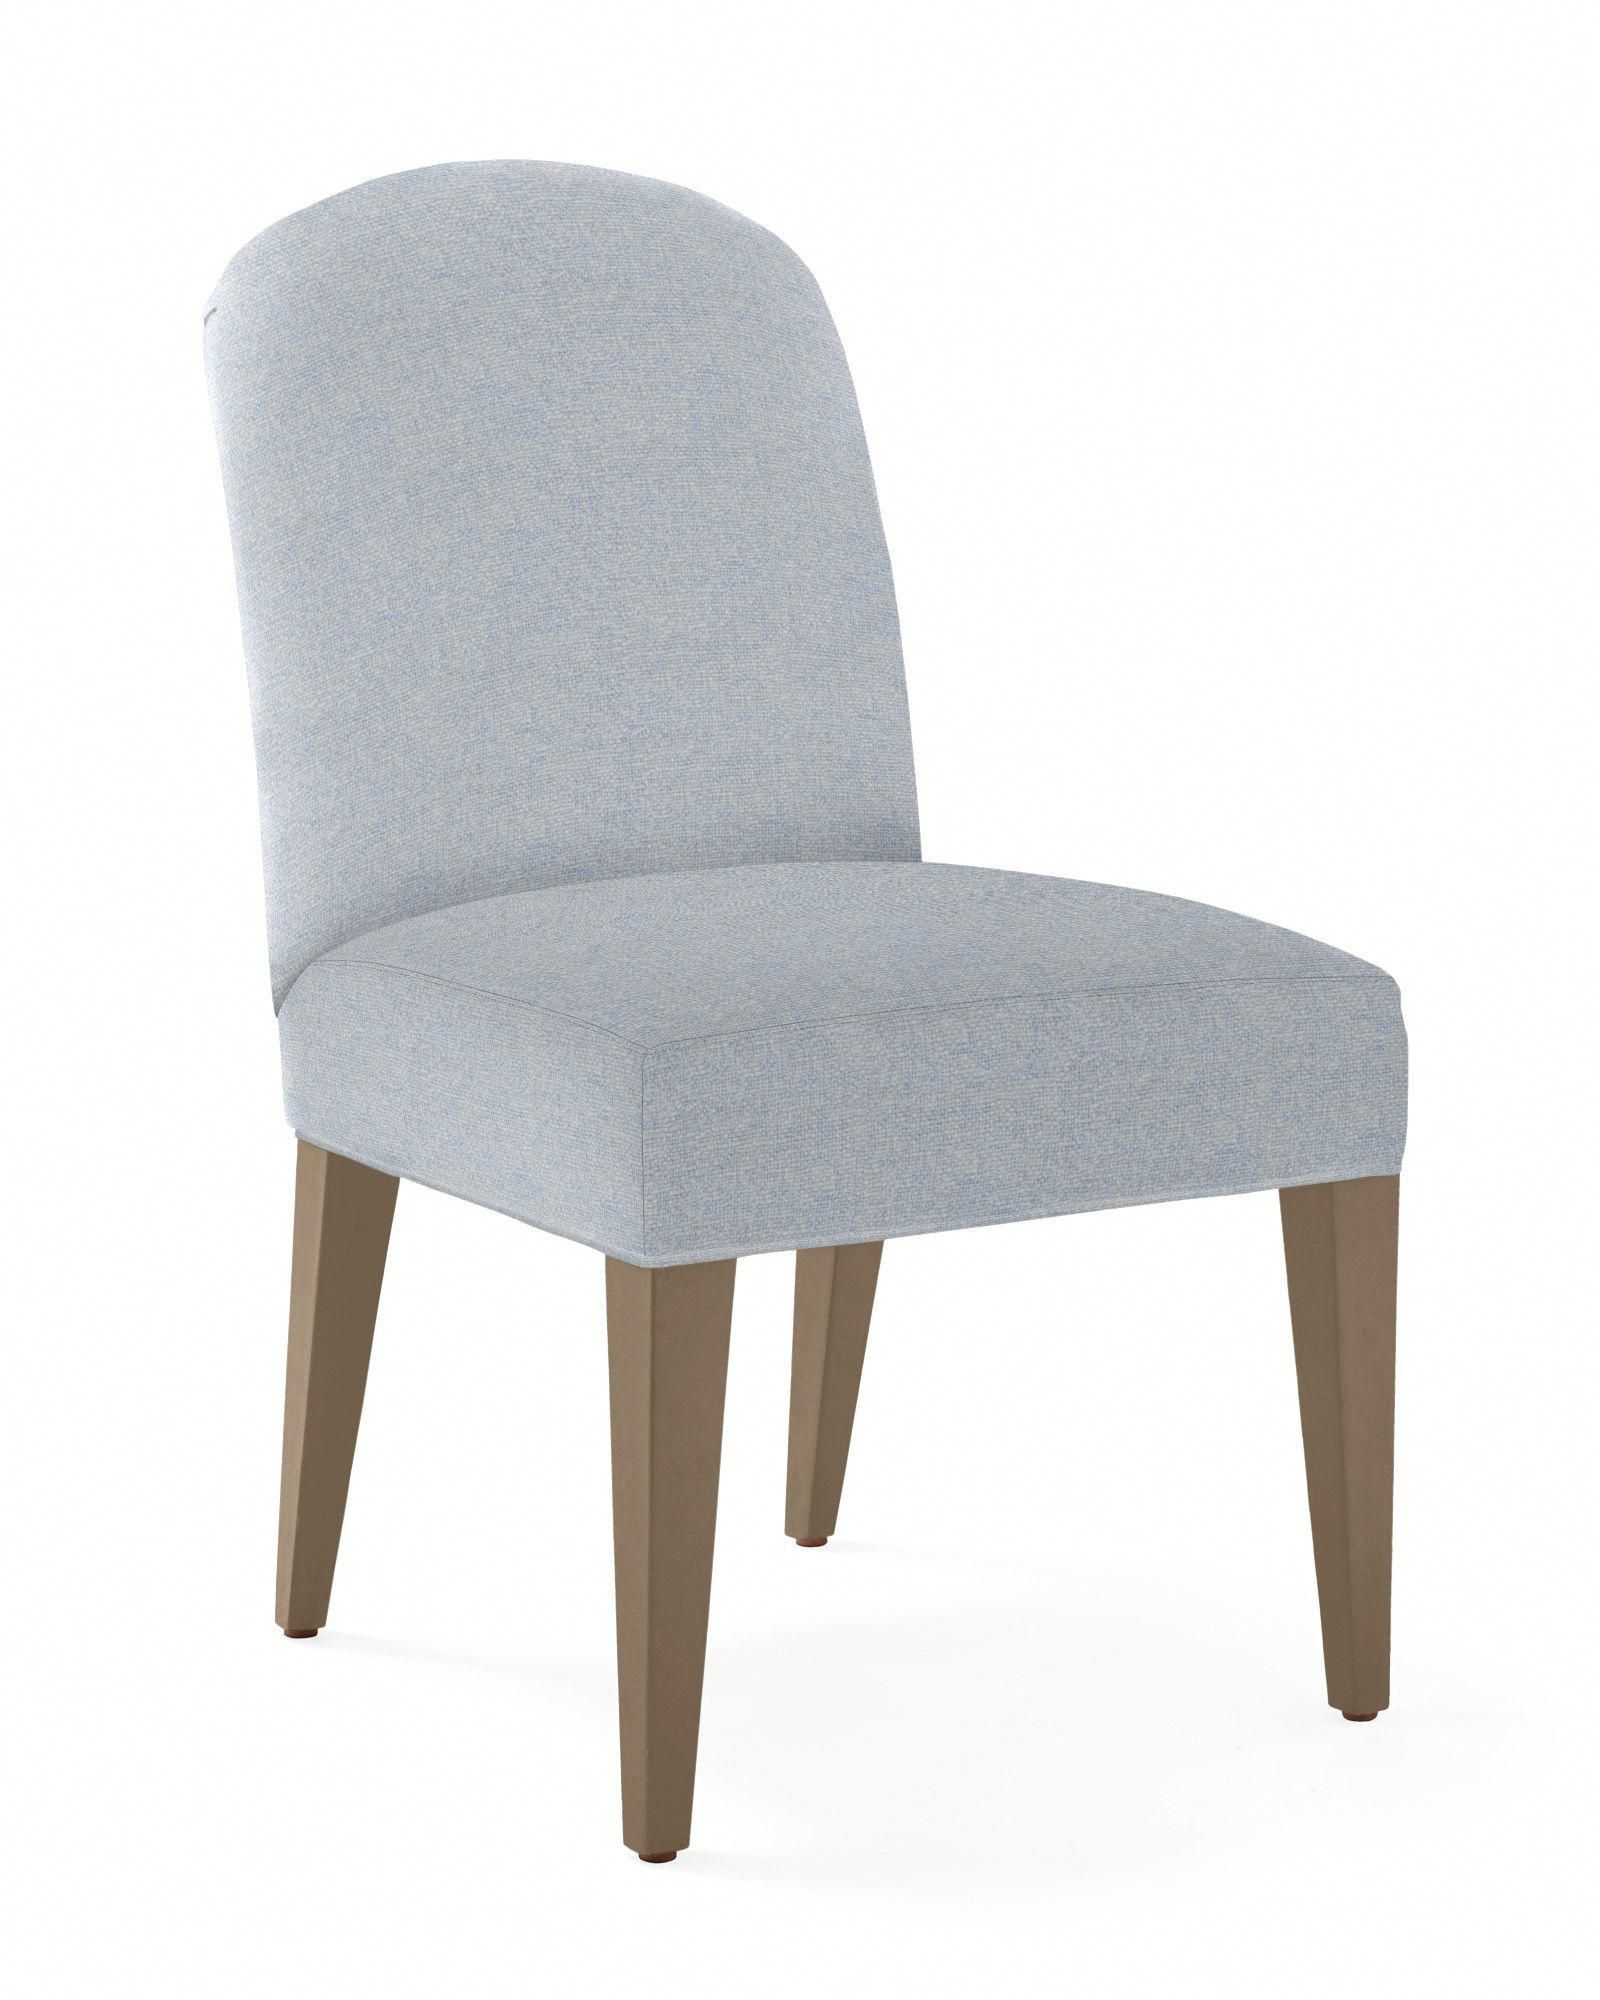 Ames Dining Chair – Serena & Lily #ameschair | Styling Chairs With Ames Arm Sofa Chairs (Image 5 of 20)